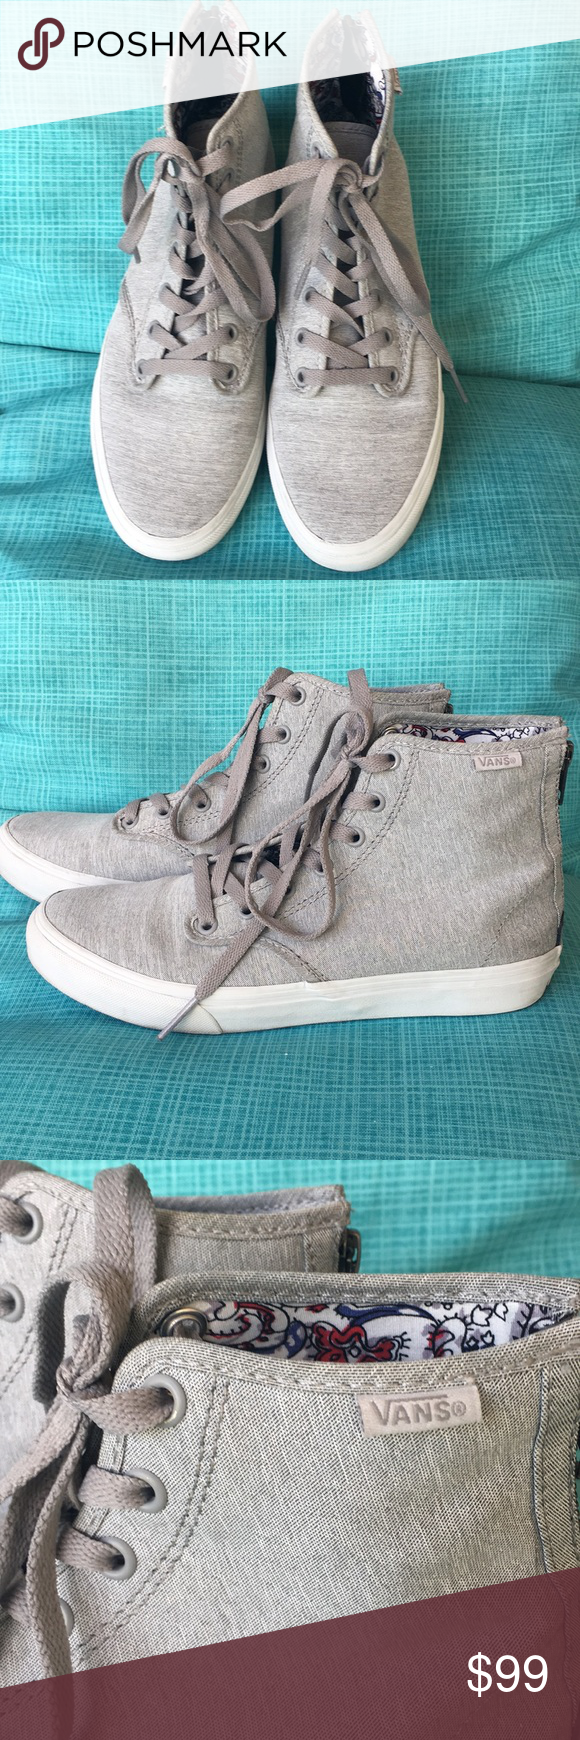 e767e5310c746d Spotted while shopping on Poshmark  VANS Ladies Zip Up High Tops in Gray  Size 8!  poshmark  fashion  shopping  style  Vans  Shoes